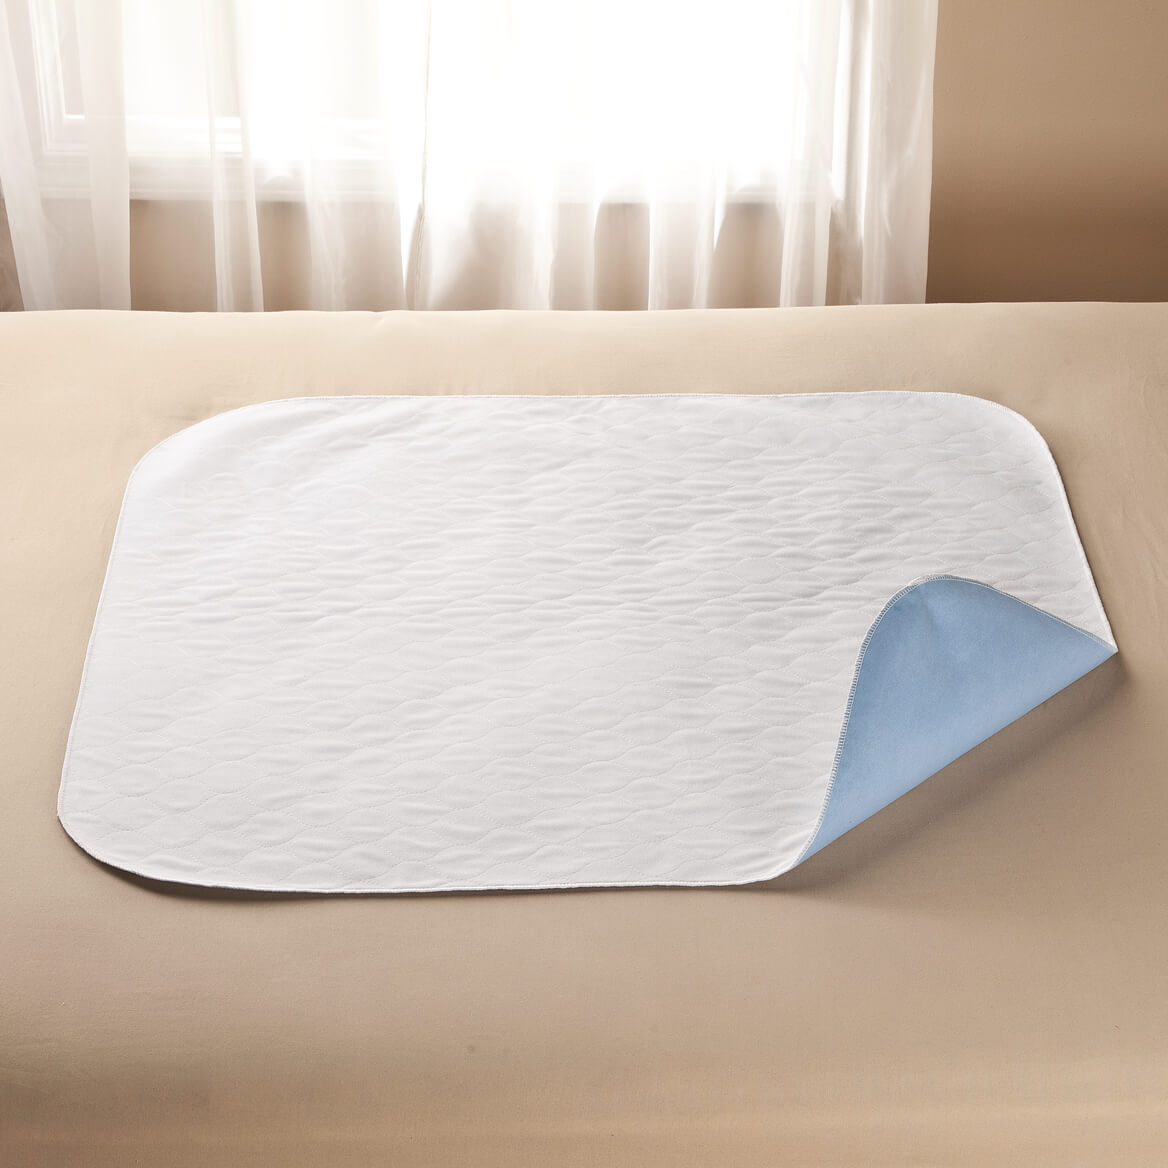 Reusable Incontinence Underpad-360078